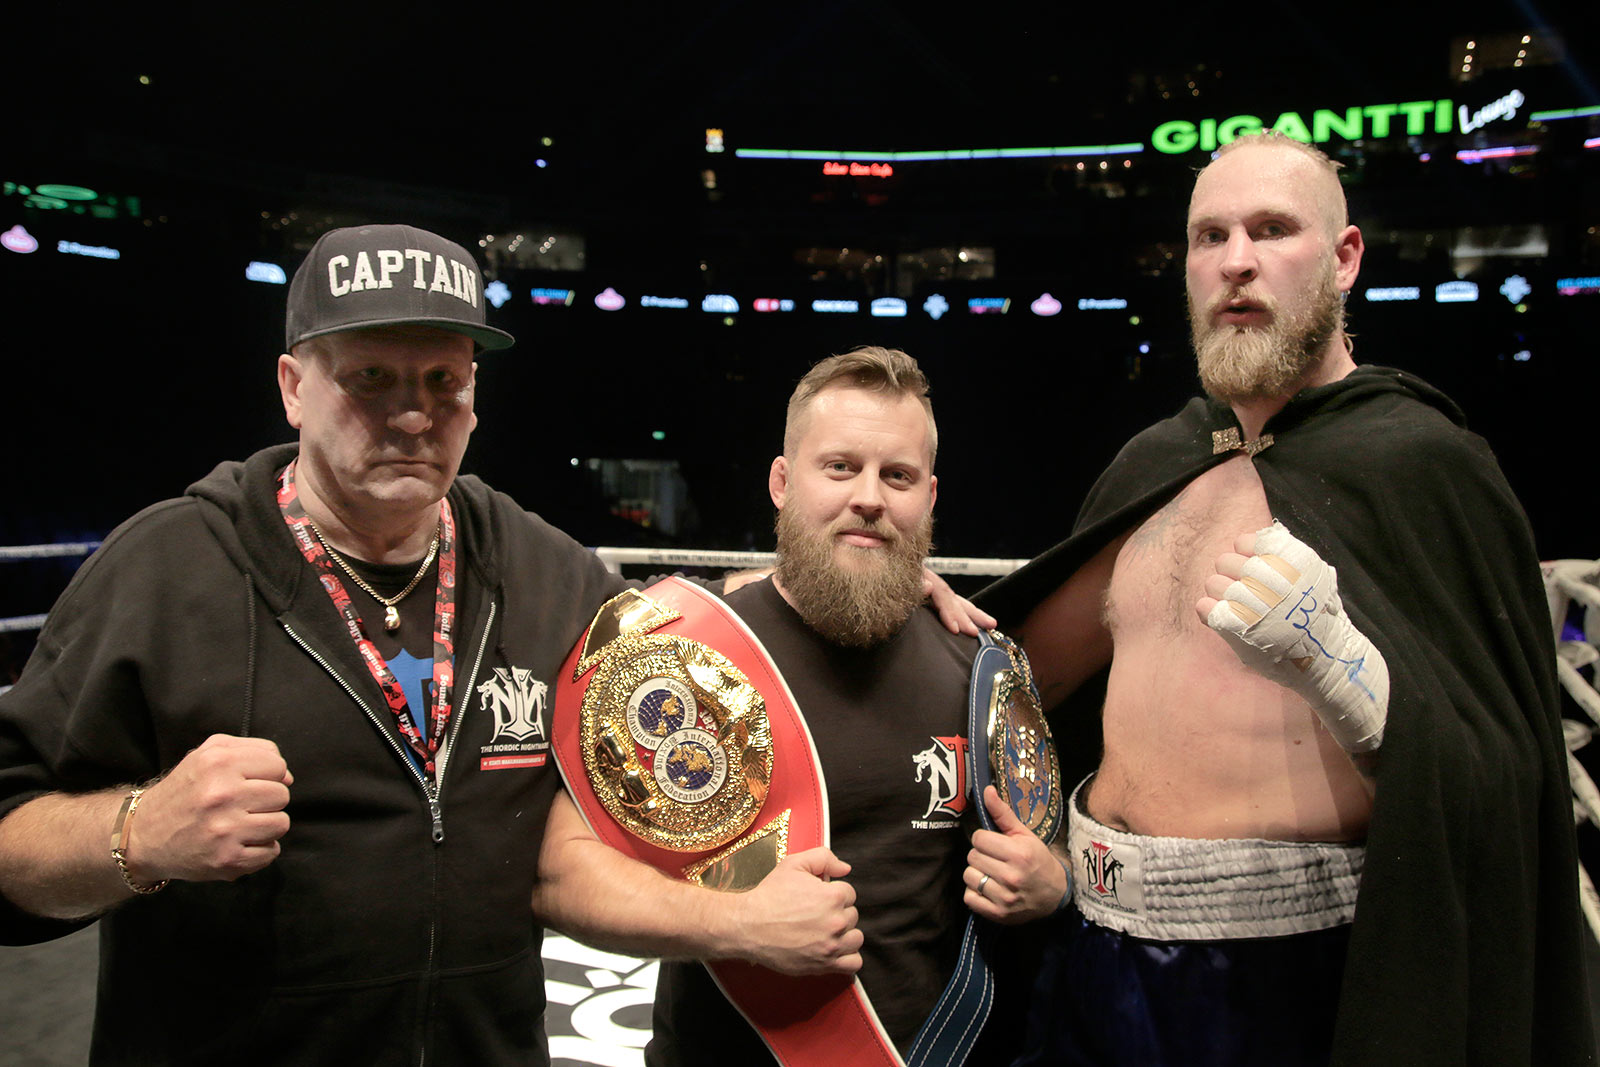 Seppo Finnilä, the cutman, Johan Lindström, the trainer, and the European champion, Robert Helenius posing for Finland Today. Picture: Tony Öhberg for Finland Today